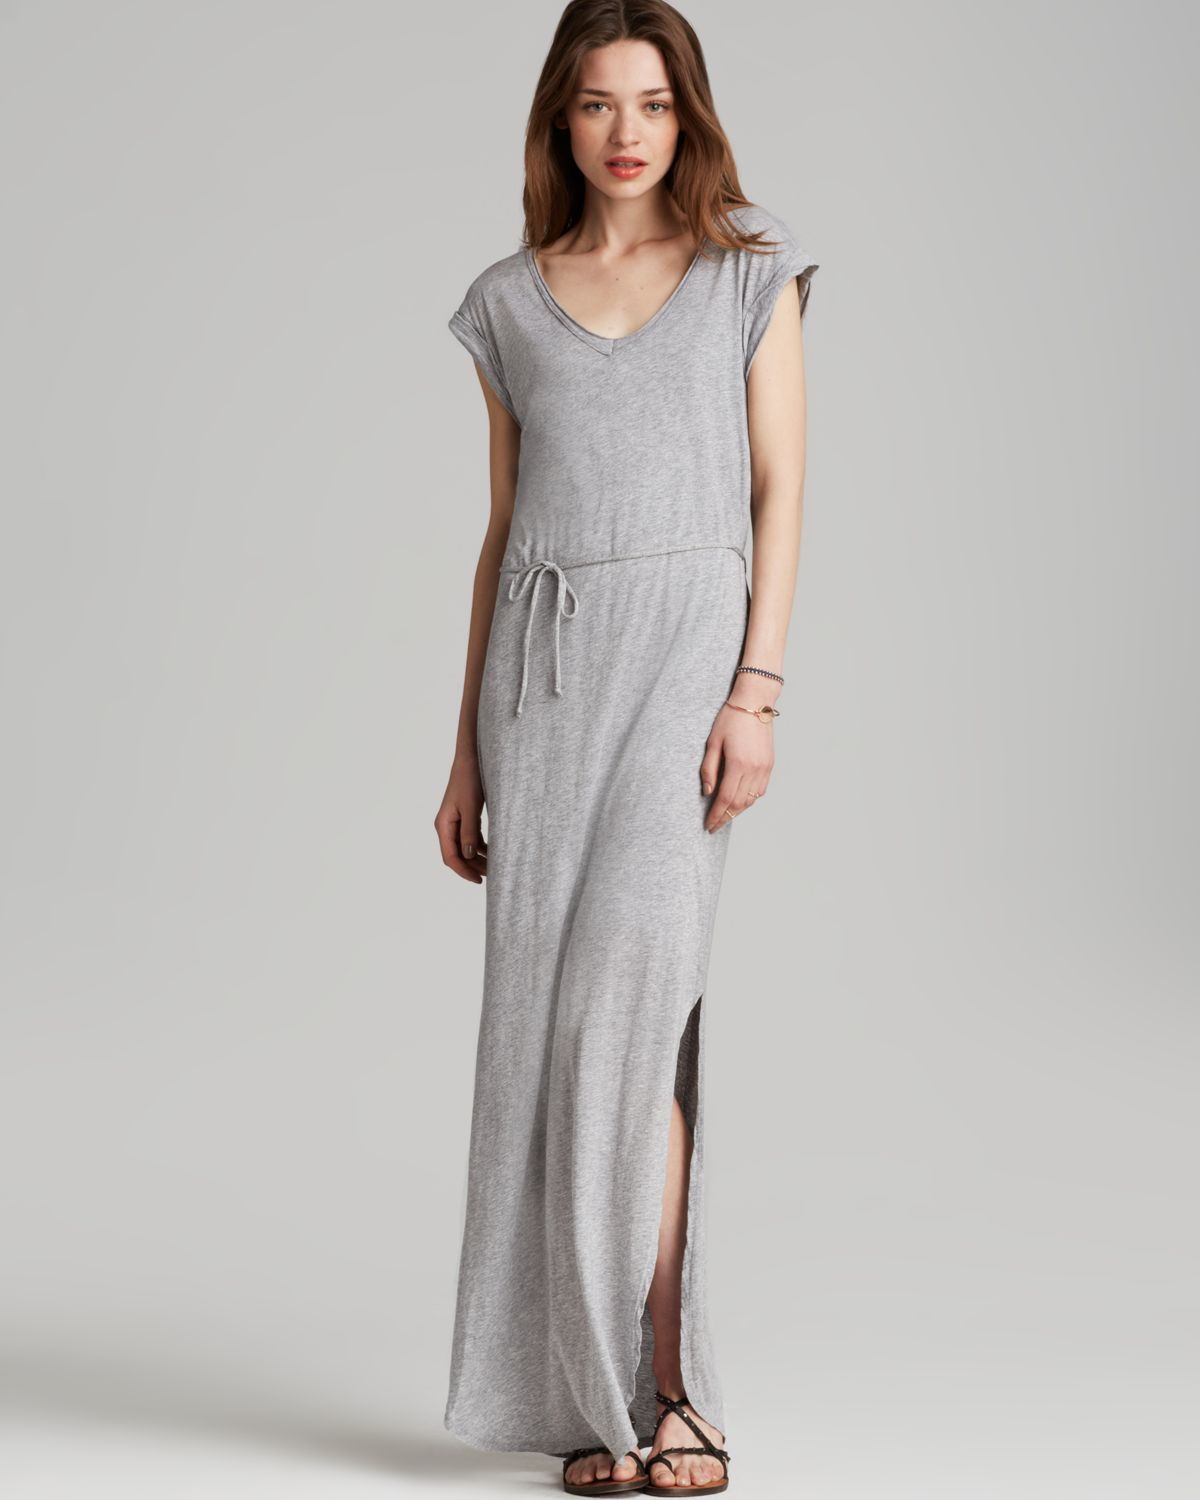 Splendid Maxi Dress - V Neck in Gray | Lyst